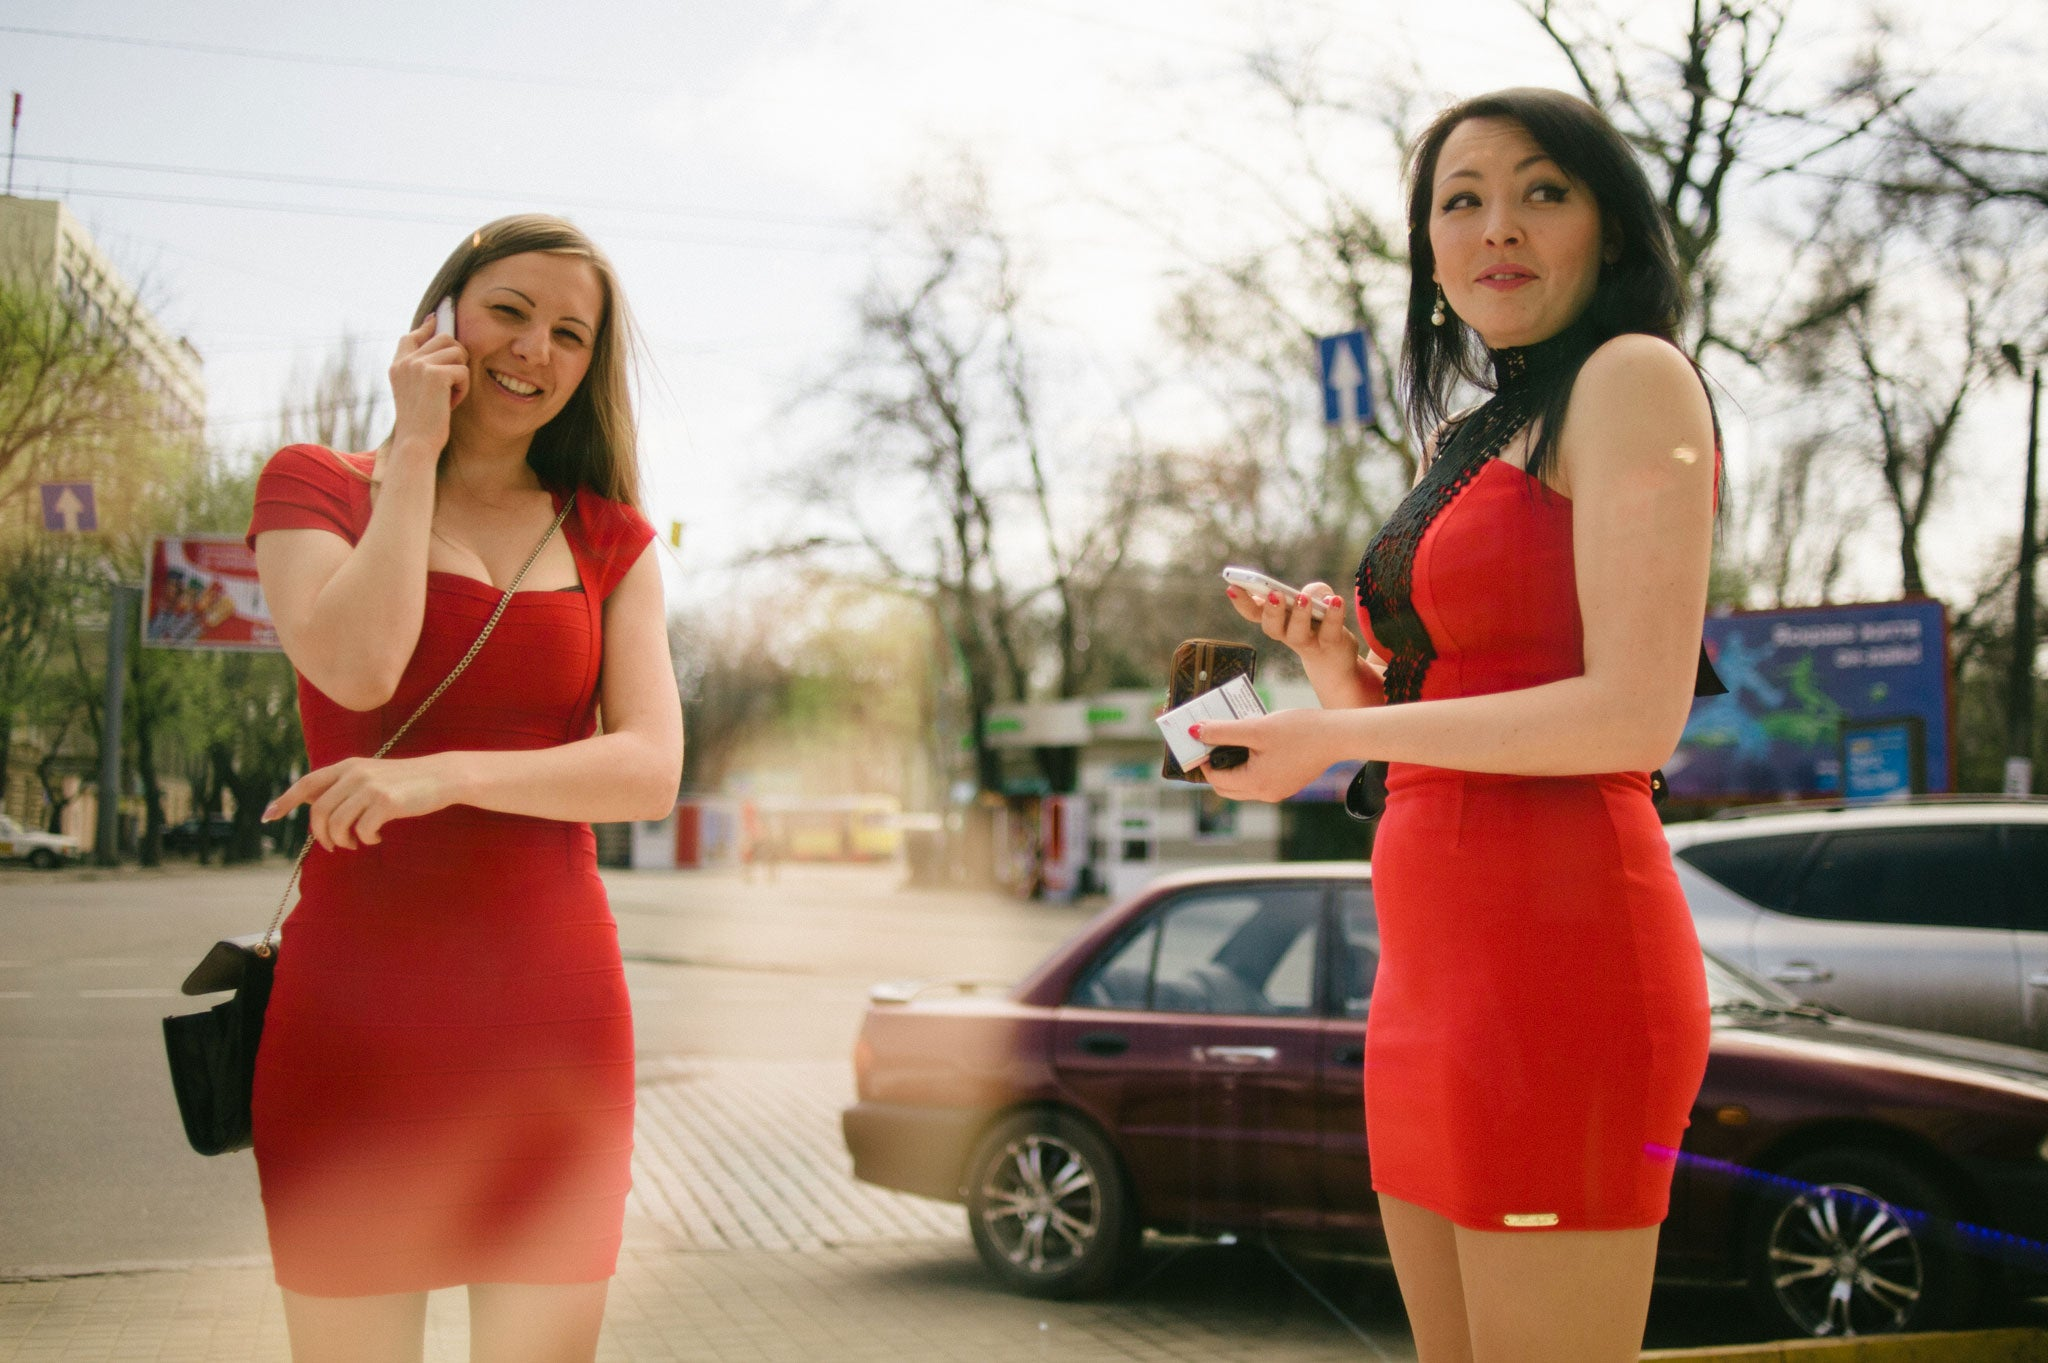 Russian mail order brides meet Russian women and Ukraine